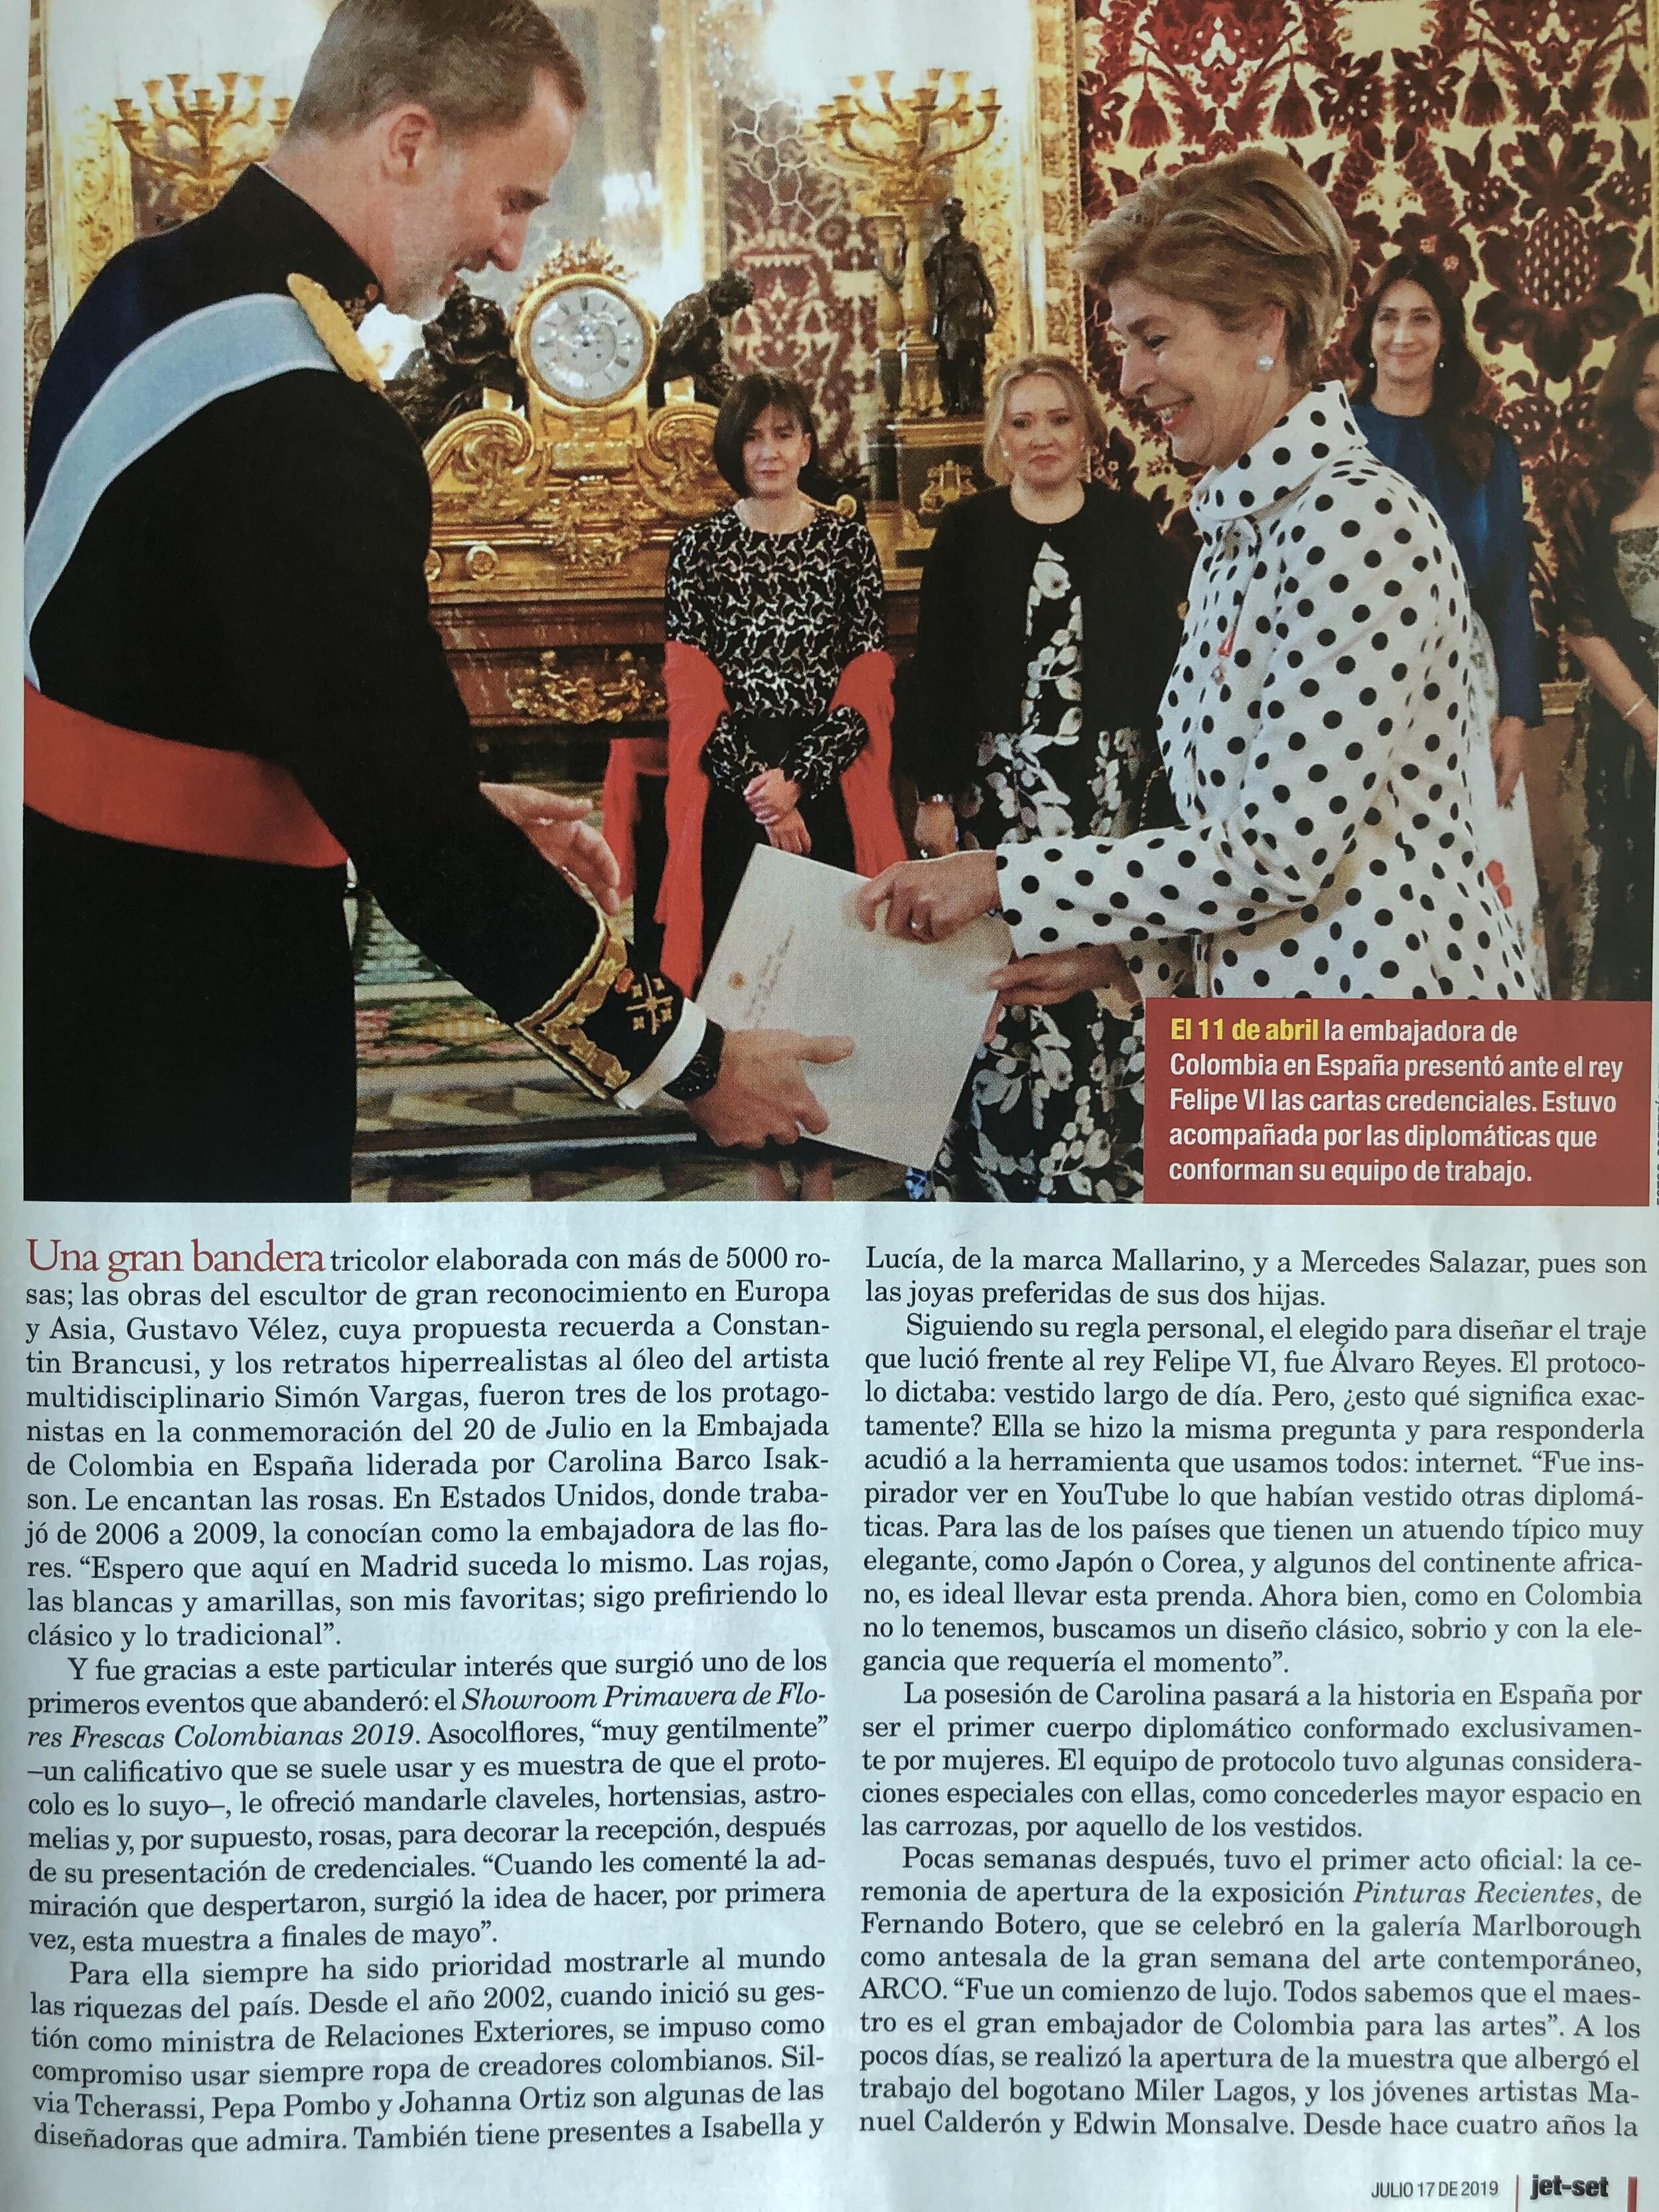 Coverage in JETSET Magazine of Simon's show at the Colombian Embassy in Madrid, Spain July 2019